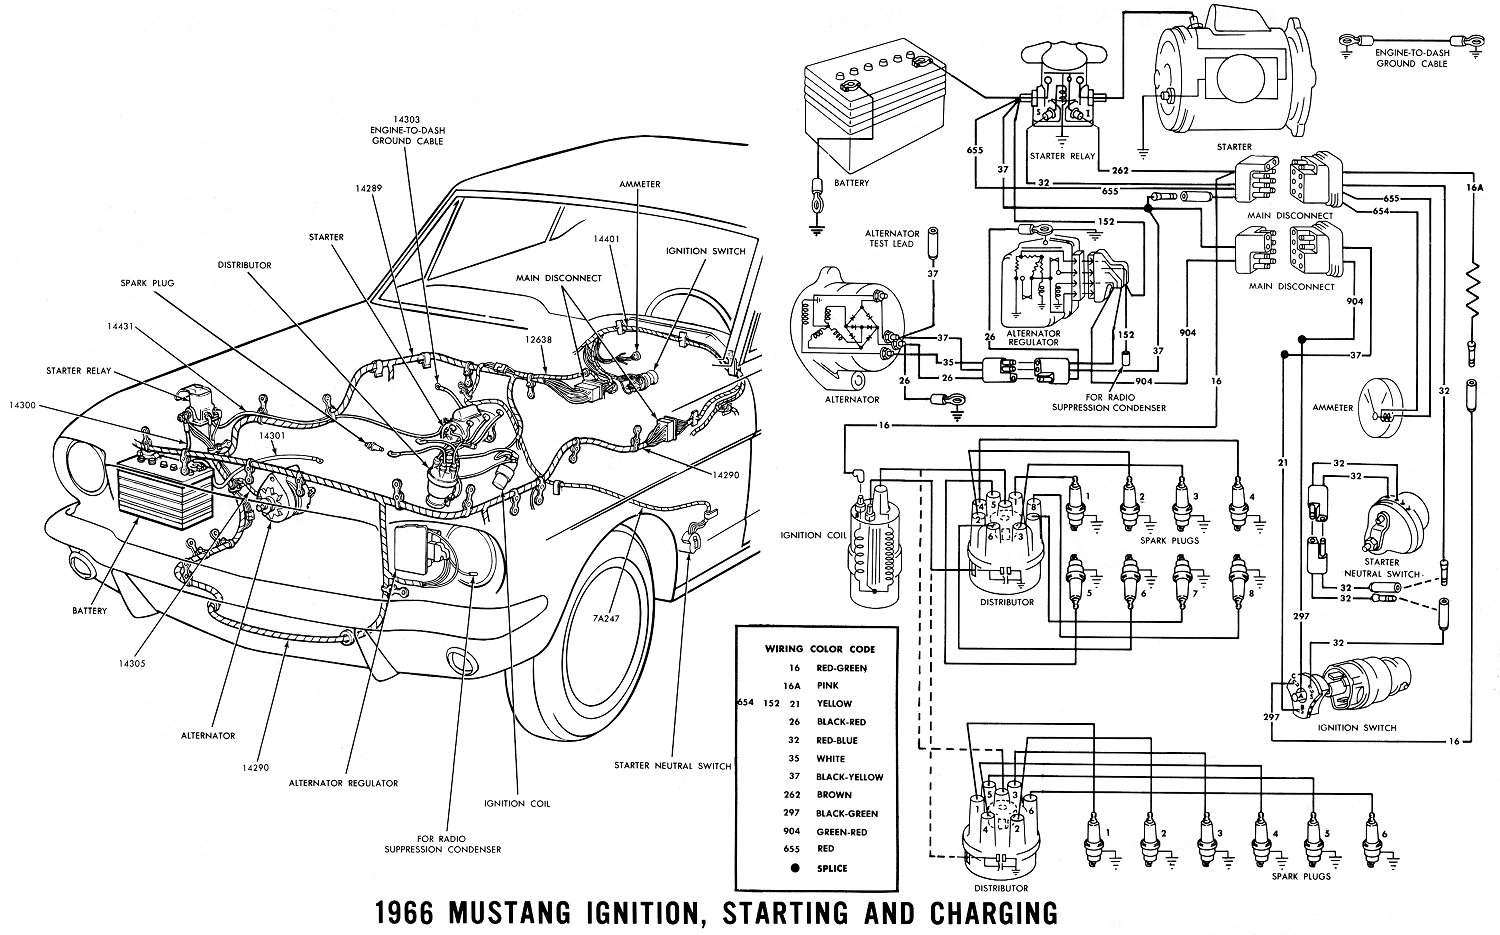 66ignit 1966 mustang wiring diagrams average joe restoration 1966 mustang wiring diagrams at creativeand.co